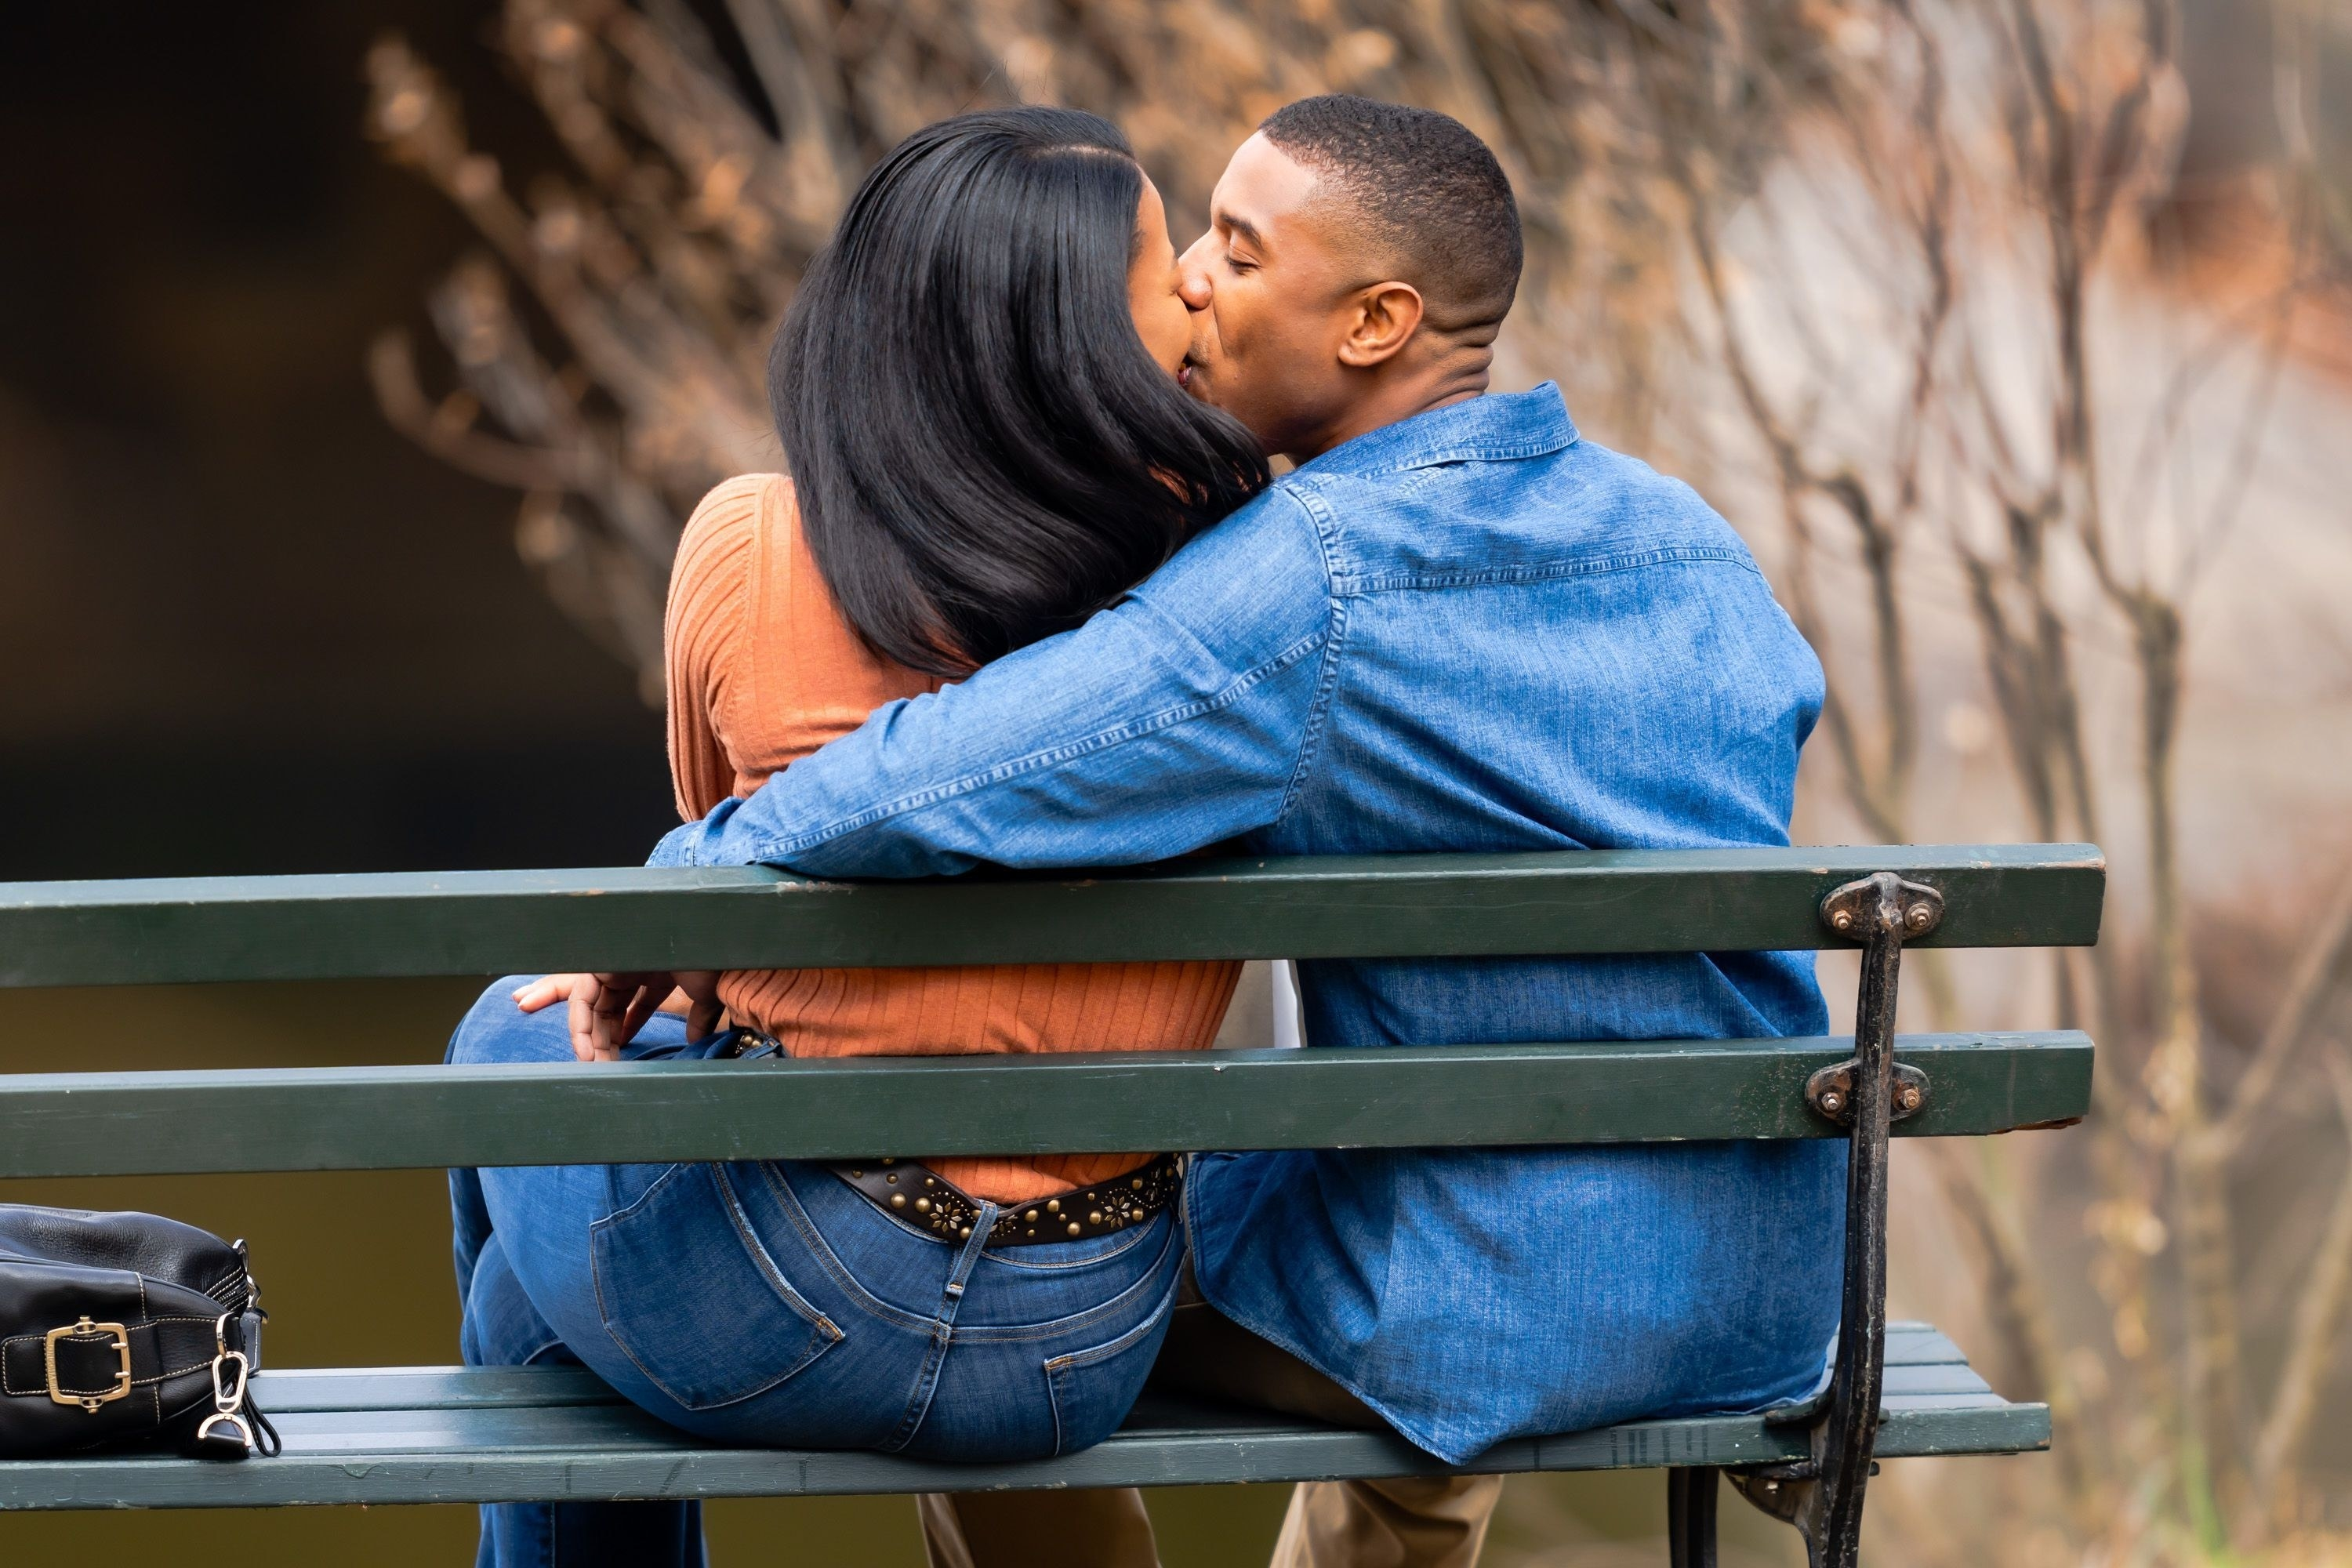 Michael's character kissing his wife as they sit on a bench in a scene from the film